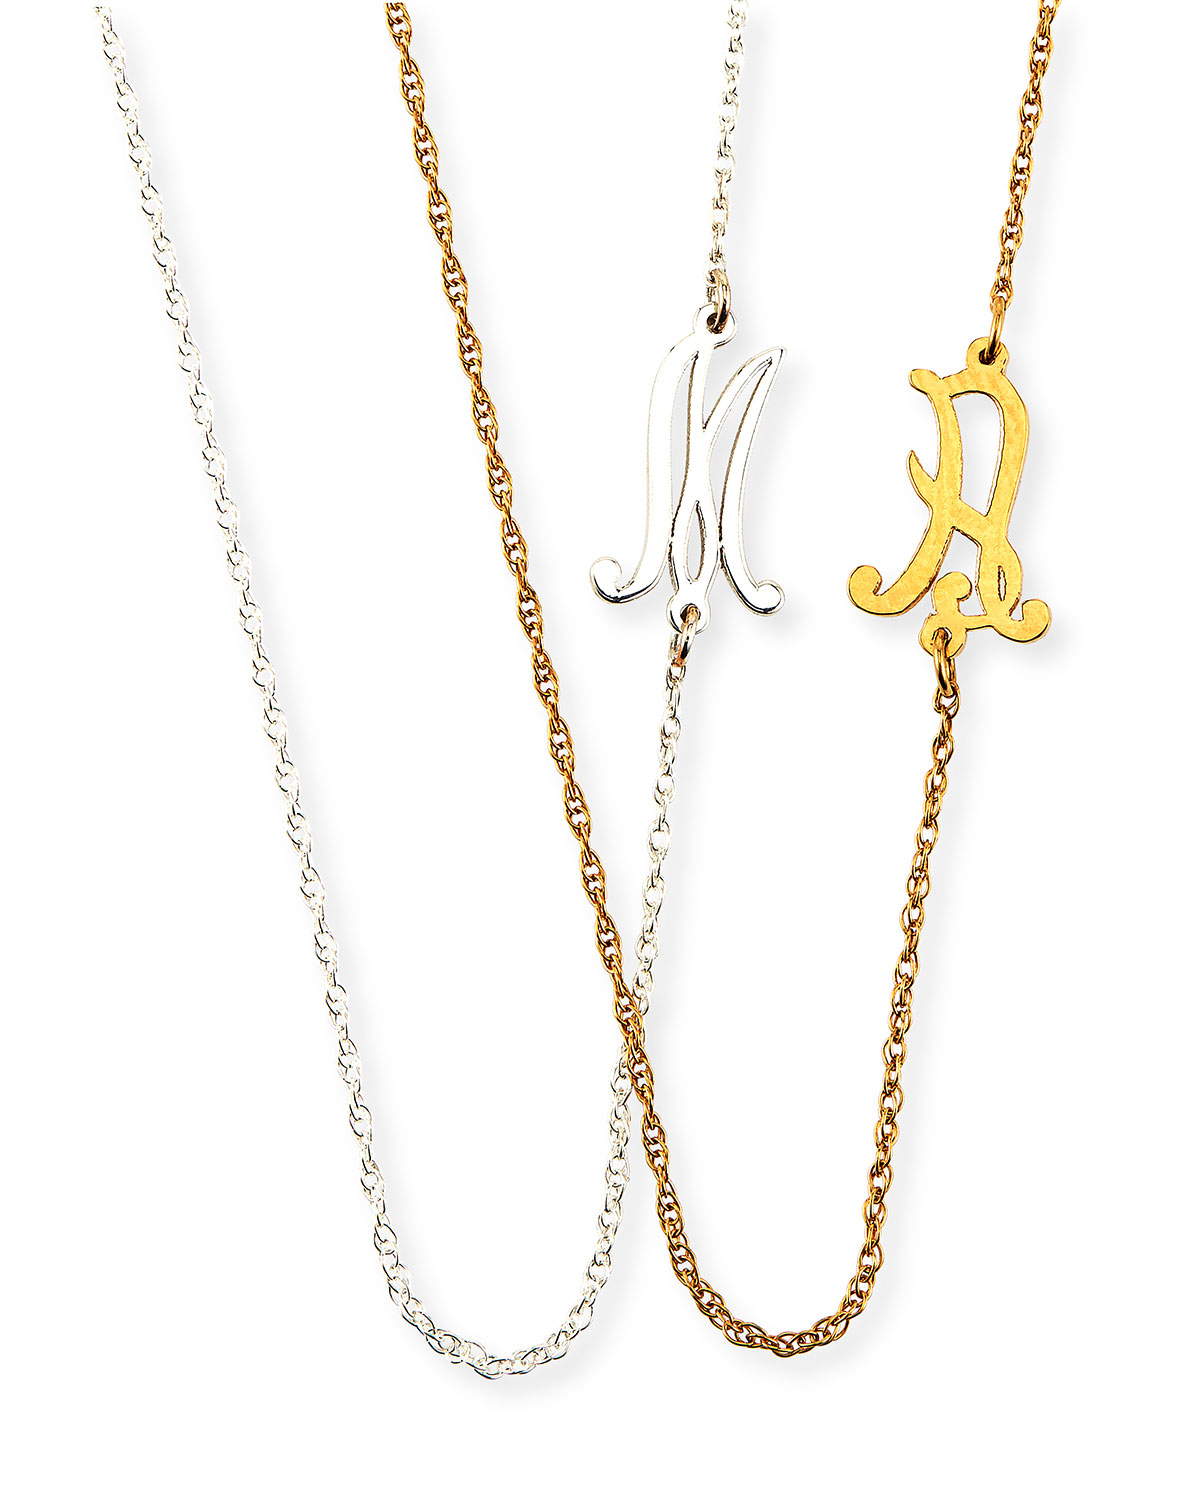 10 types gold pendant necklace with initials serpden